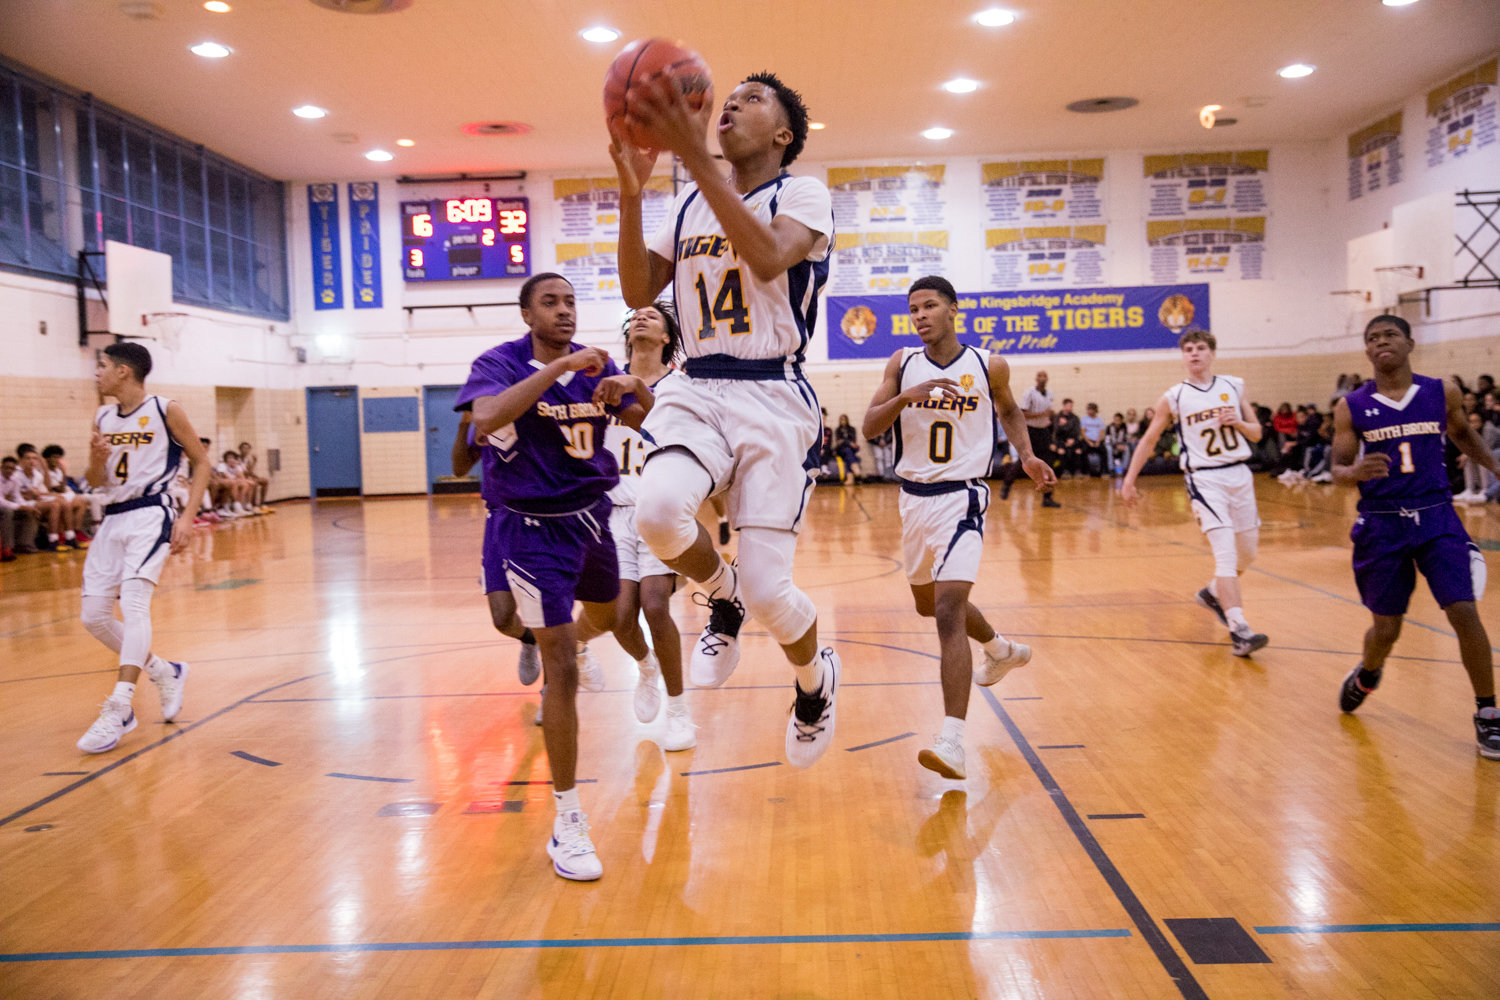 Riverdale/Kingsbridge Academy senior Jacques Zoumanigui scored 11 points against South Bronx, but it wasn't enough to carry the Tigers in an 80-60 loss to the Phoenix.